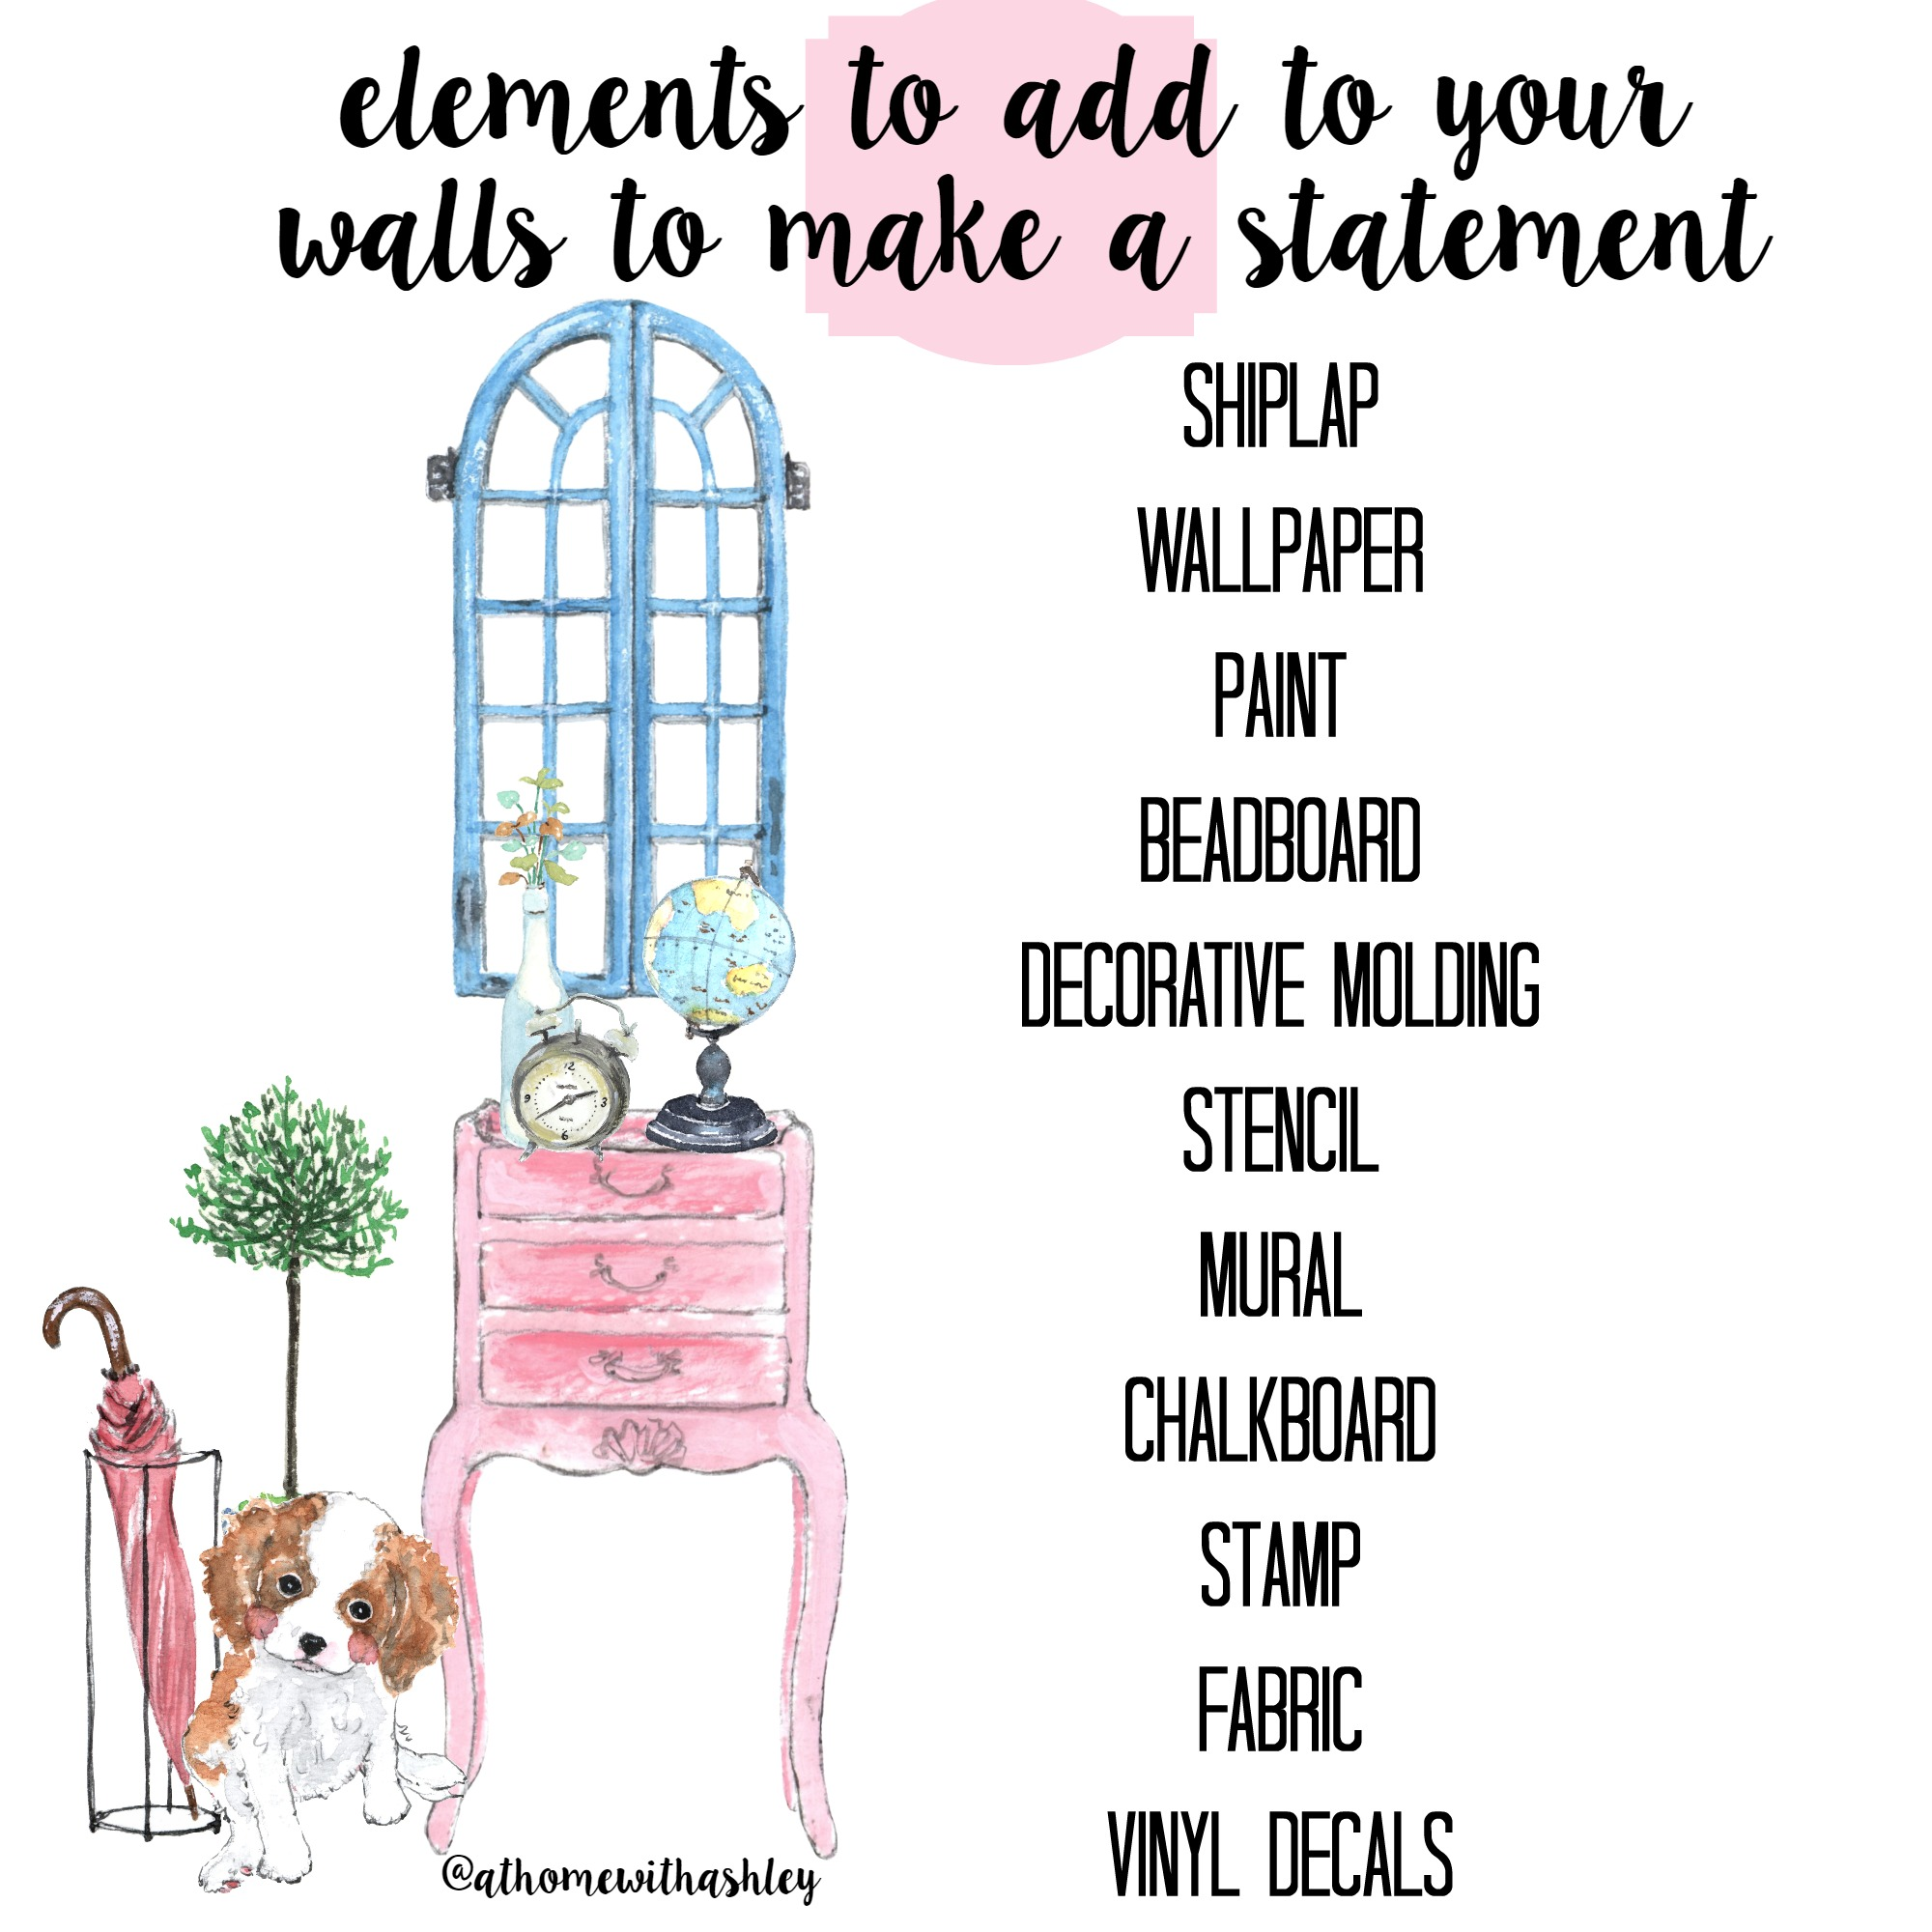 elements to add to your walls to make a statement